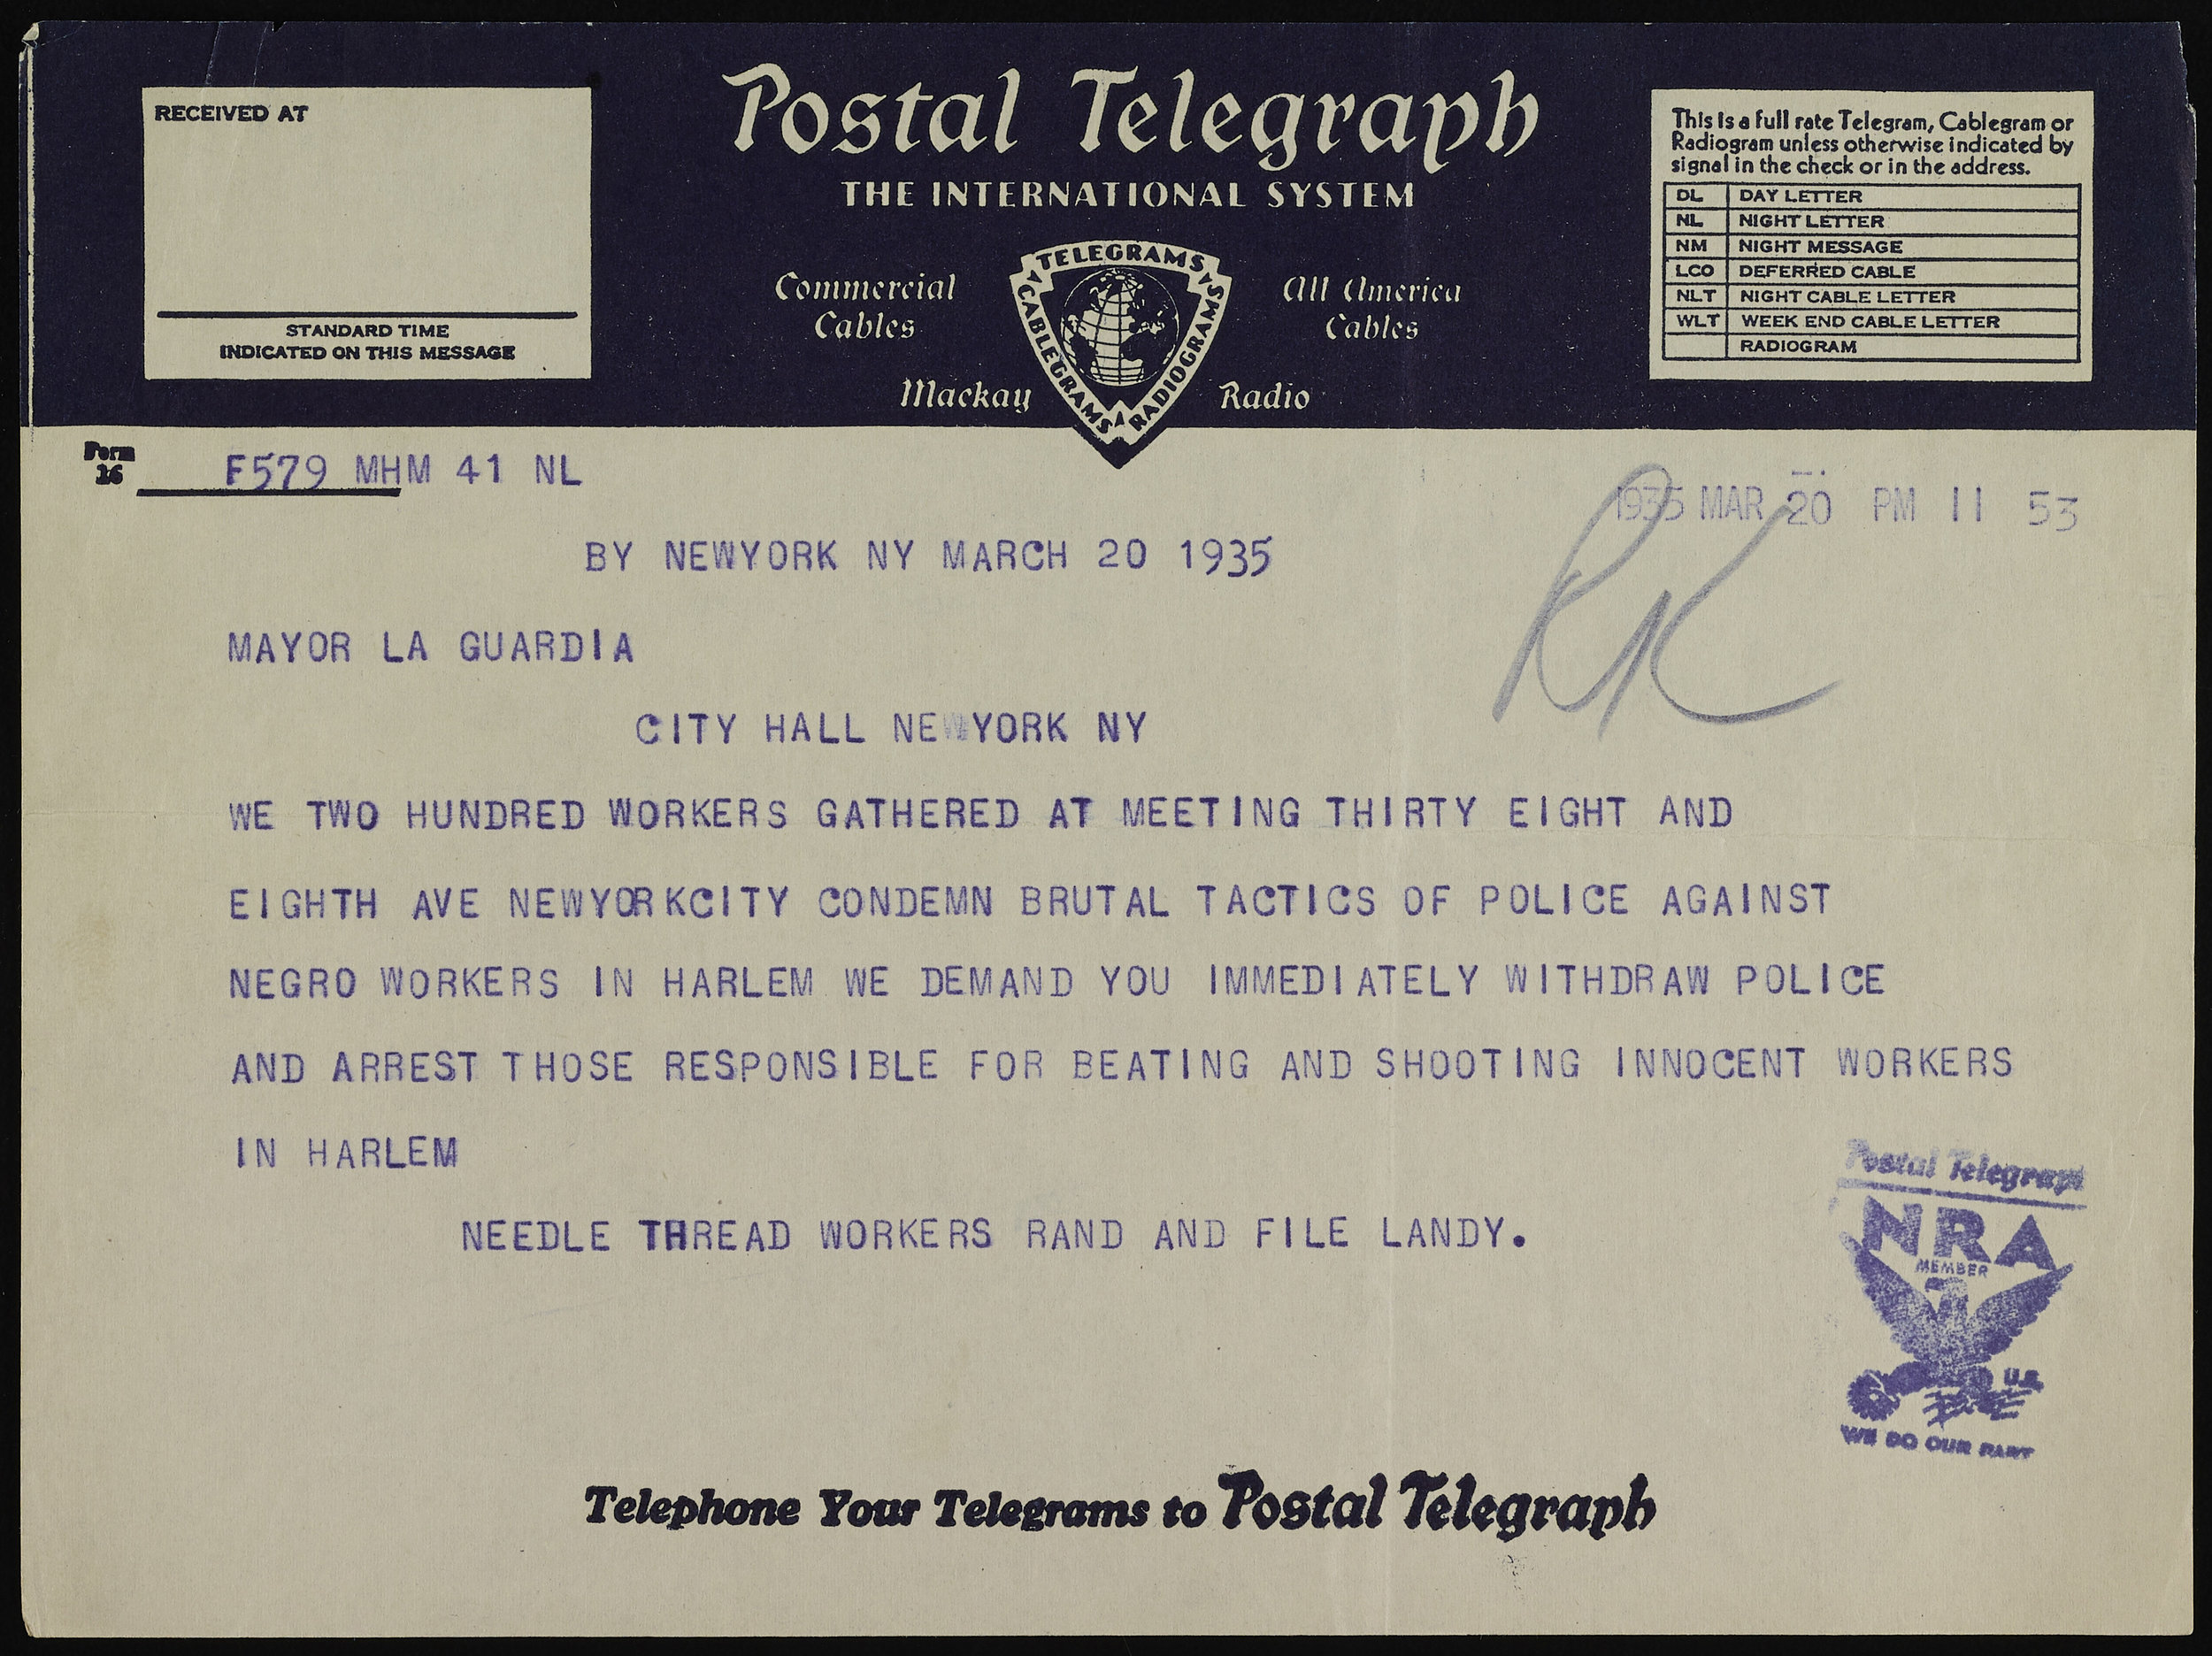 Telegram sent by protesters from the Needle Thread Workers. (The NRA stamp is for the Federal National Recovery Act, not the National Rifle Association.) Mayor LaGuardia Collection, NYC Municipal Archives.